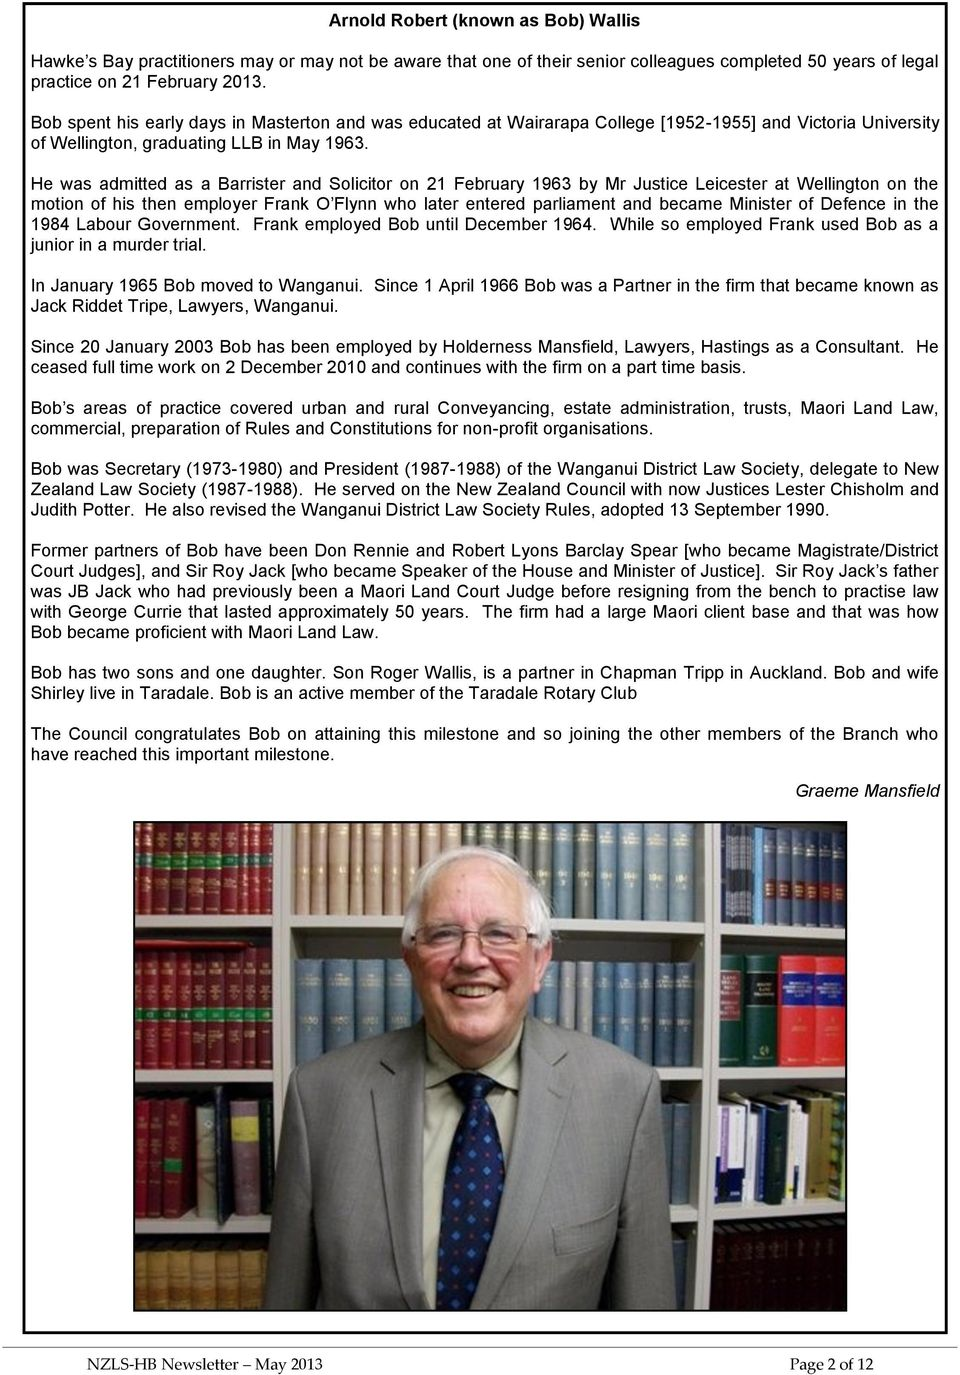 He was admitted as a Barrister and Solicitor on 21 February 1963 by Mr Justice Leicester at Wellington on the motion of his then employer Frank O Flynn who later entered parliament and became